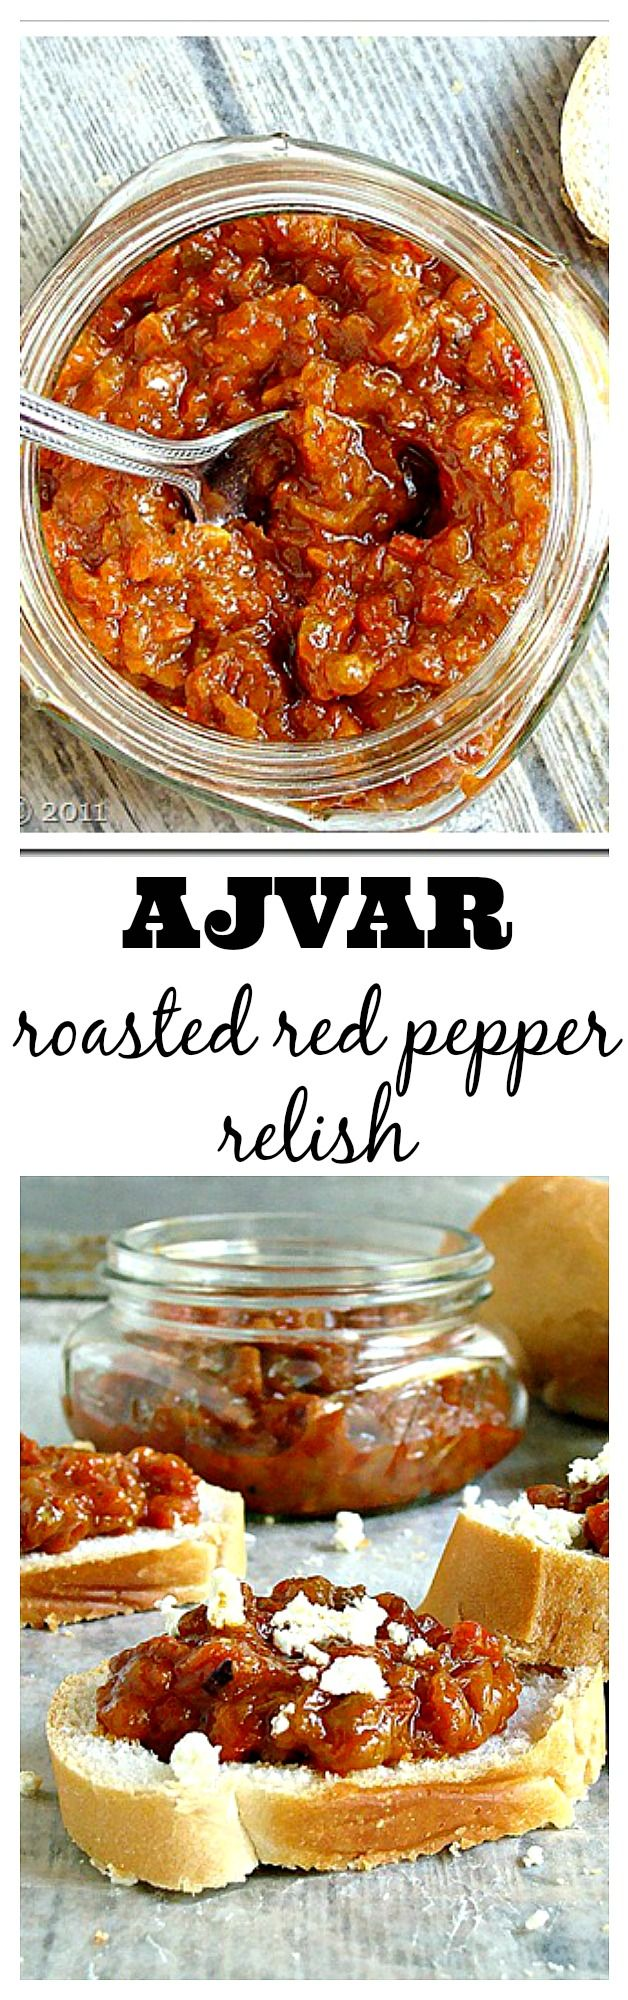 Ajvar (pronounced Aye-vahr) is an amazing red pepper spread from Macedonia. Get the recipe at diethood.com